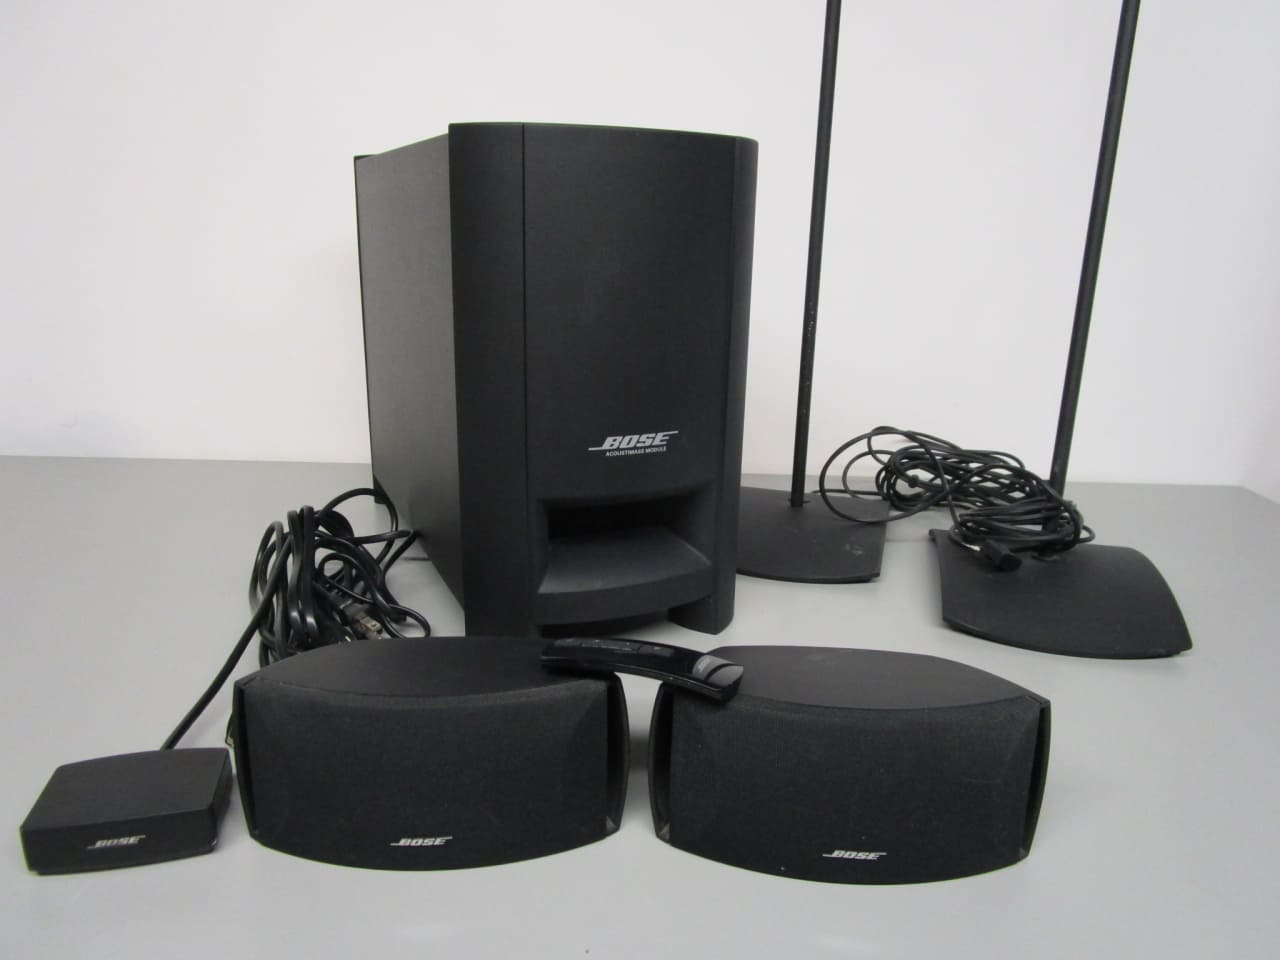 bose cinemate series ii digital home theater system local reverb. Black Bedroom Furniture Sets. Home Design Ideas